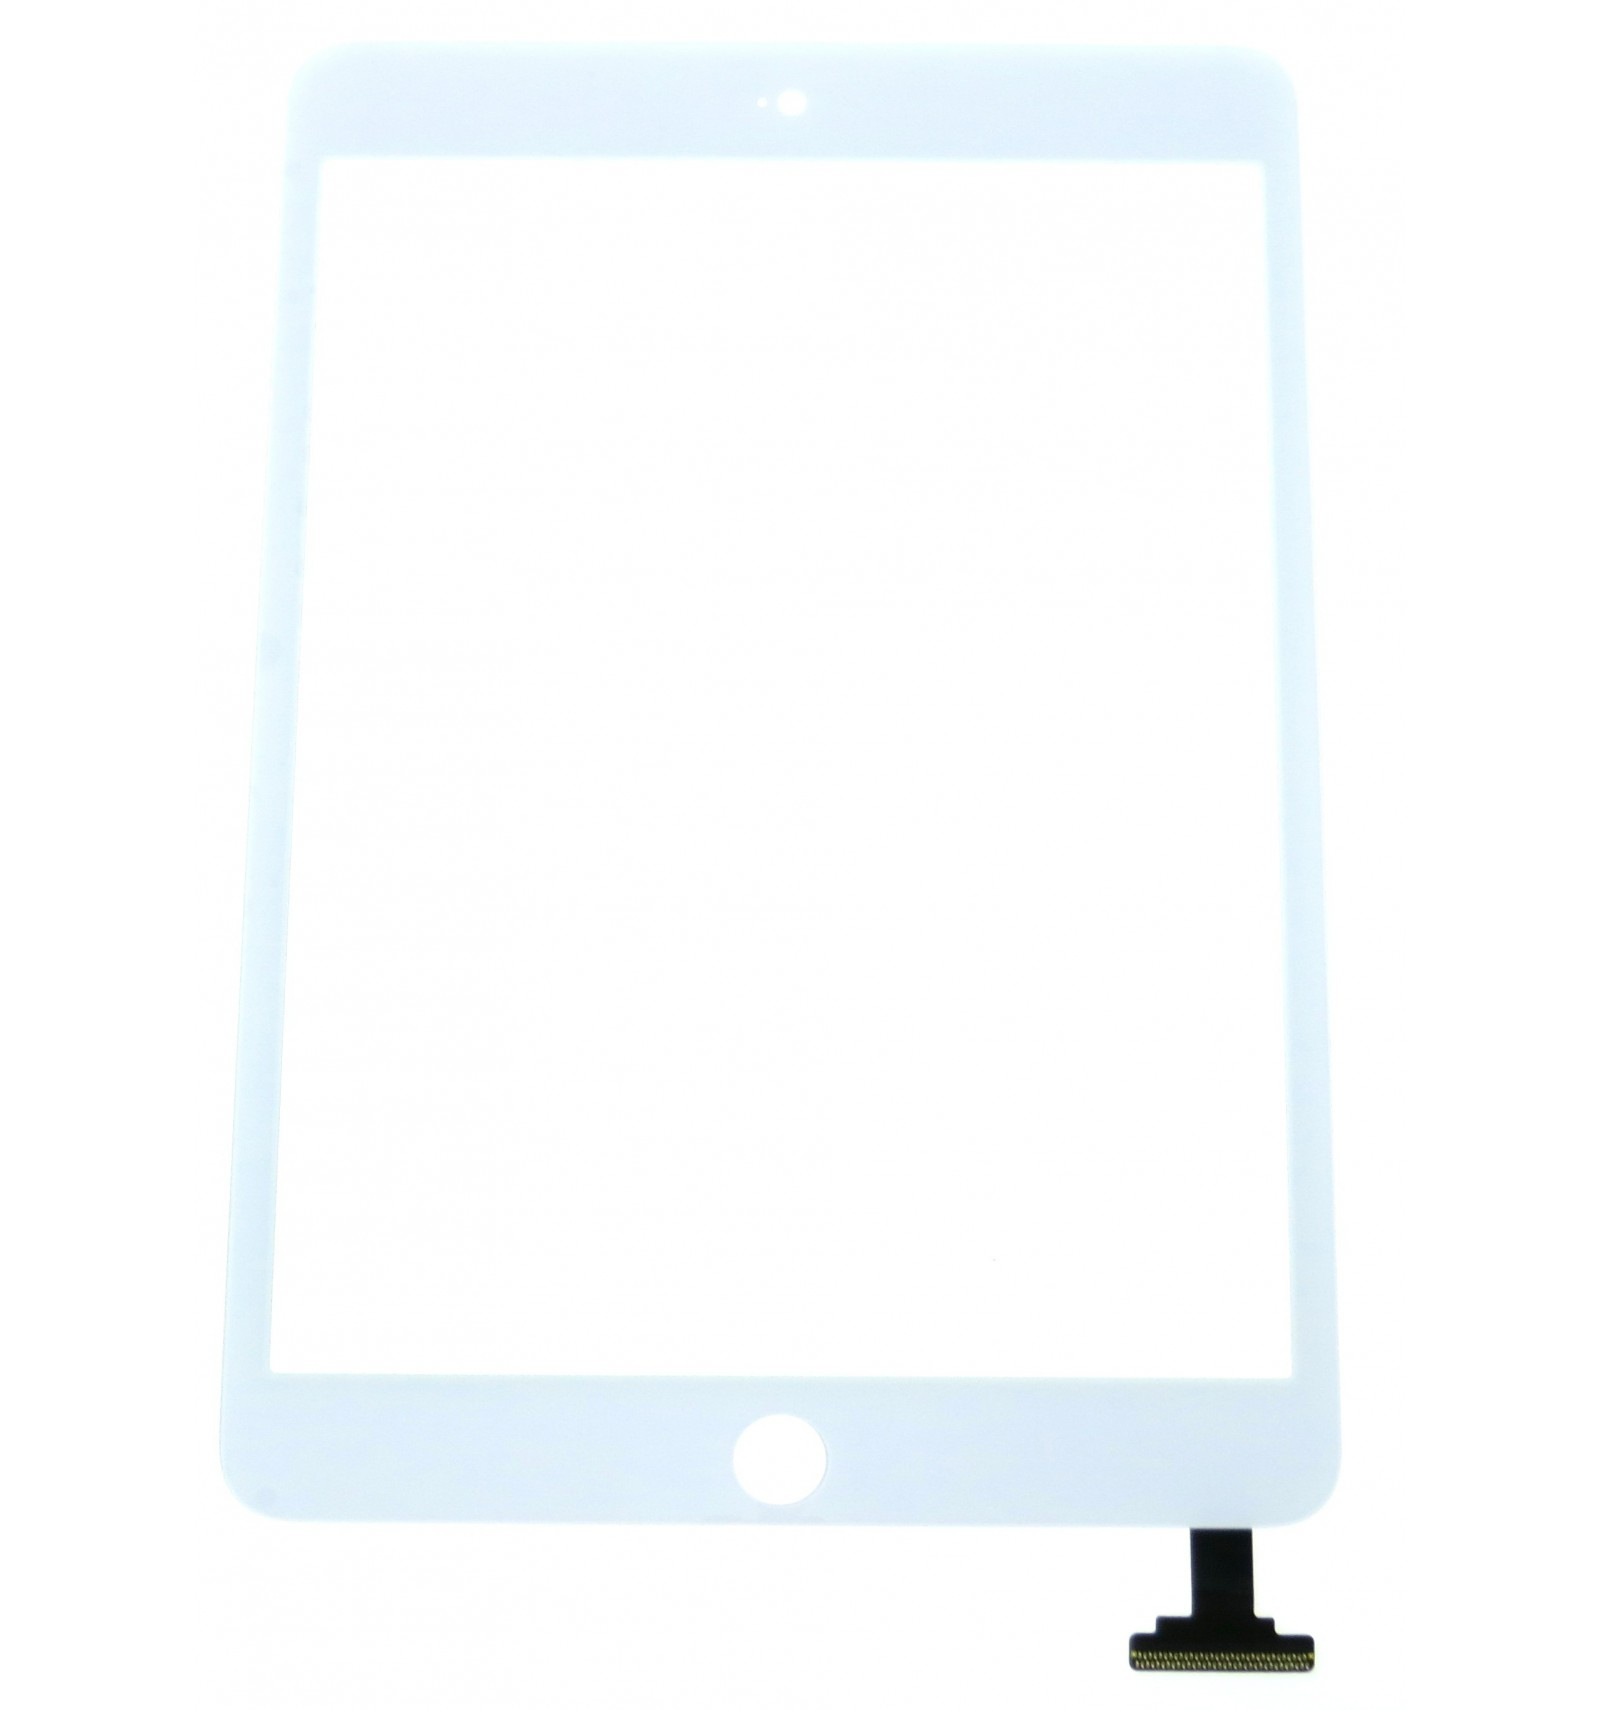 ipad screen white out